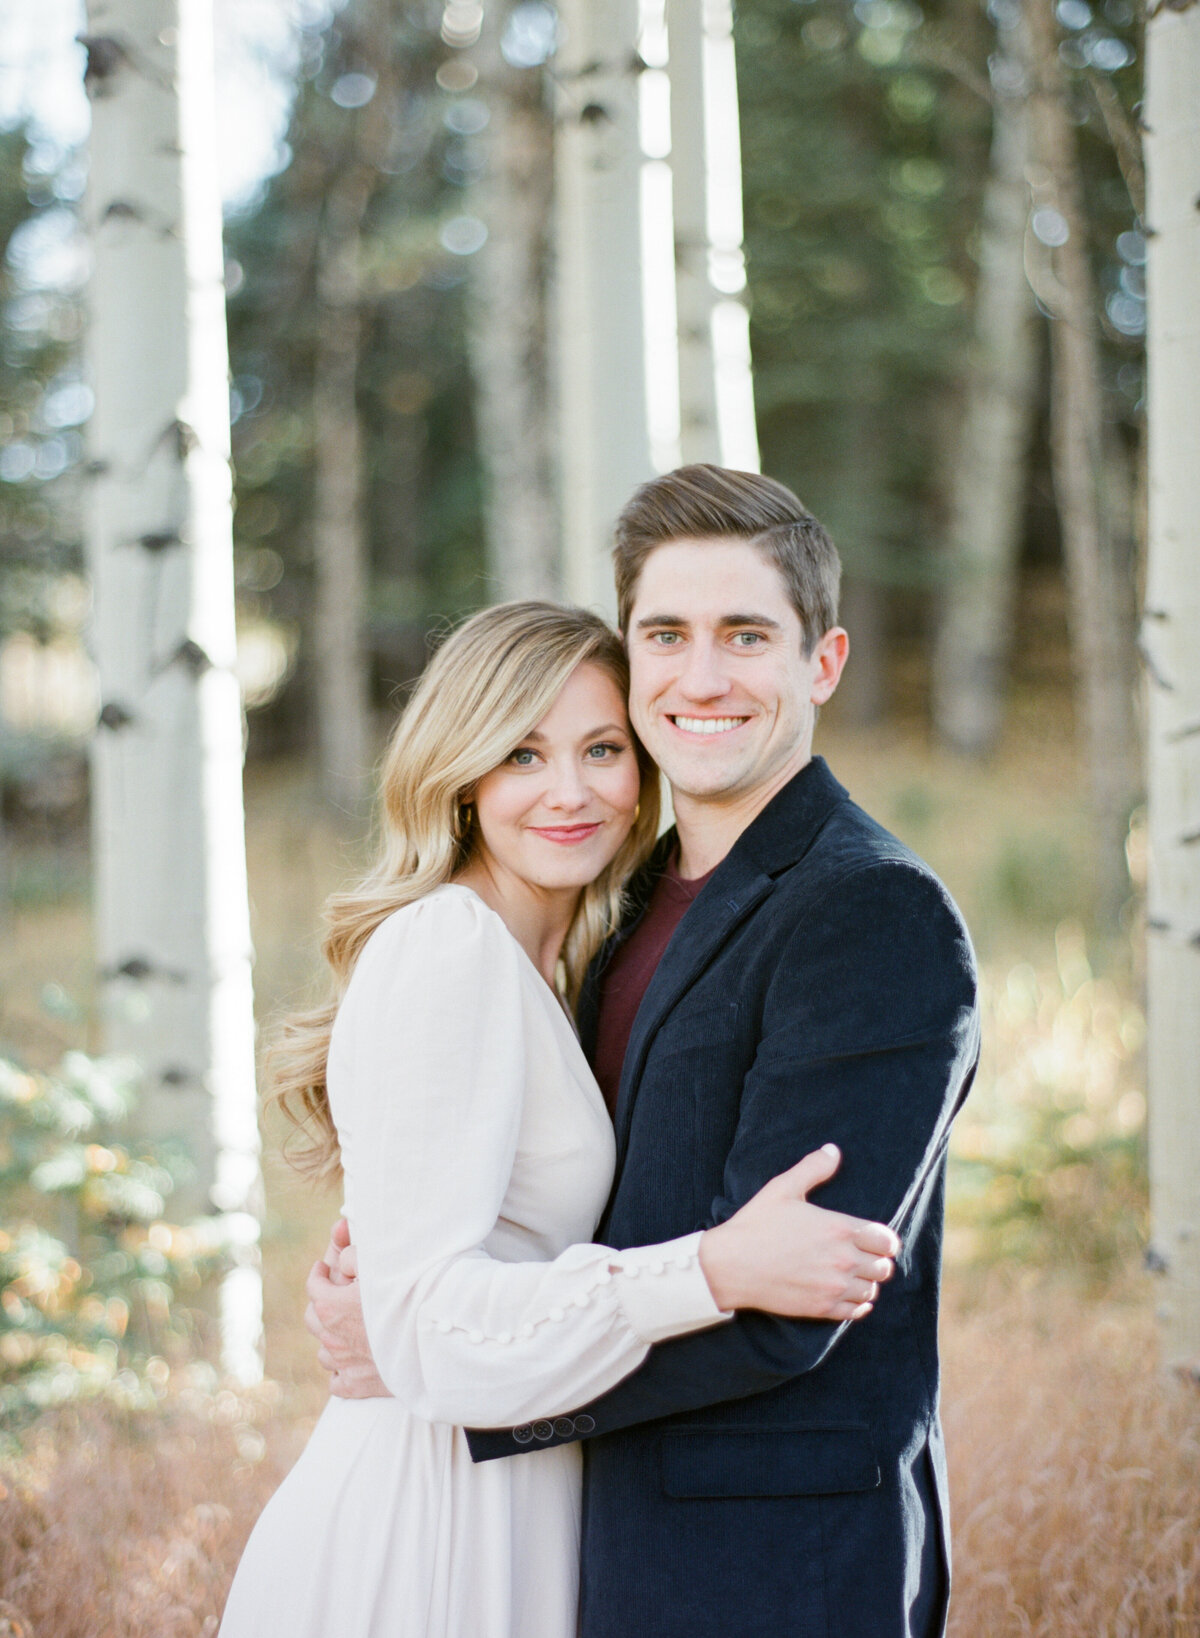 Melissa Brielle Photography Colorado Fine Art Wedding Engagement Photographer Photograph Melissa Minkner Light Airy Luxury High End19